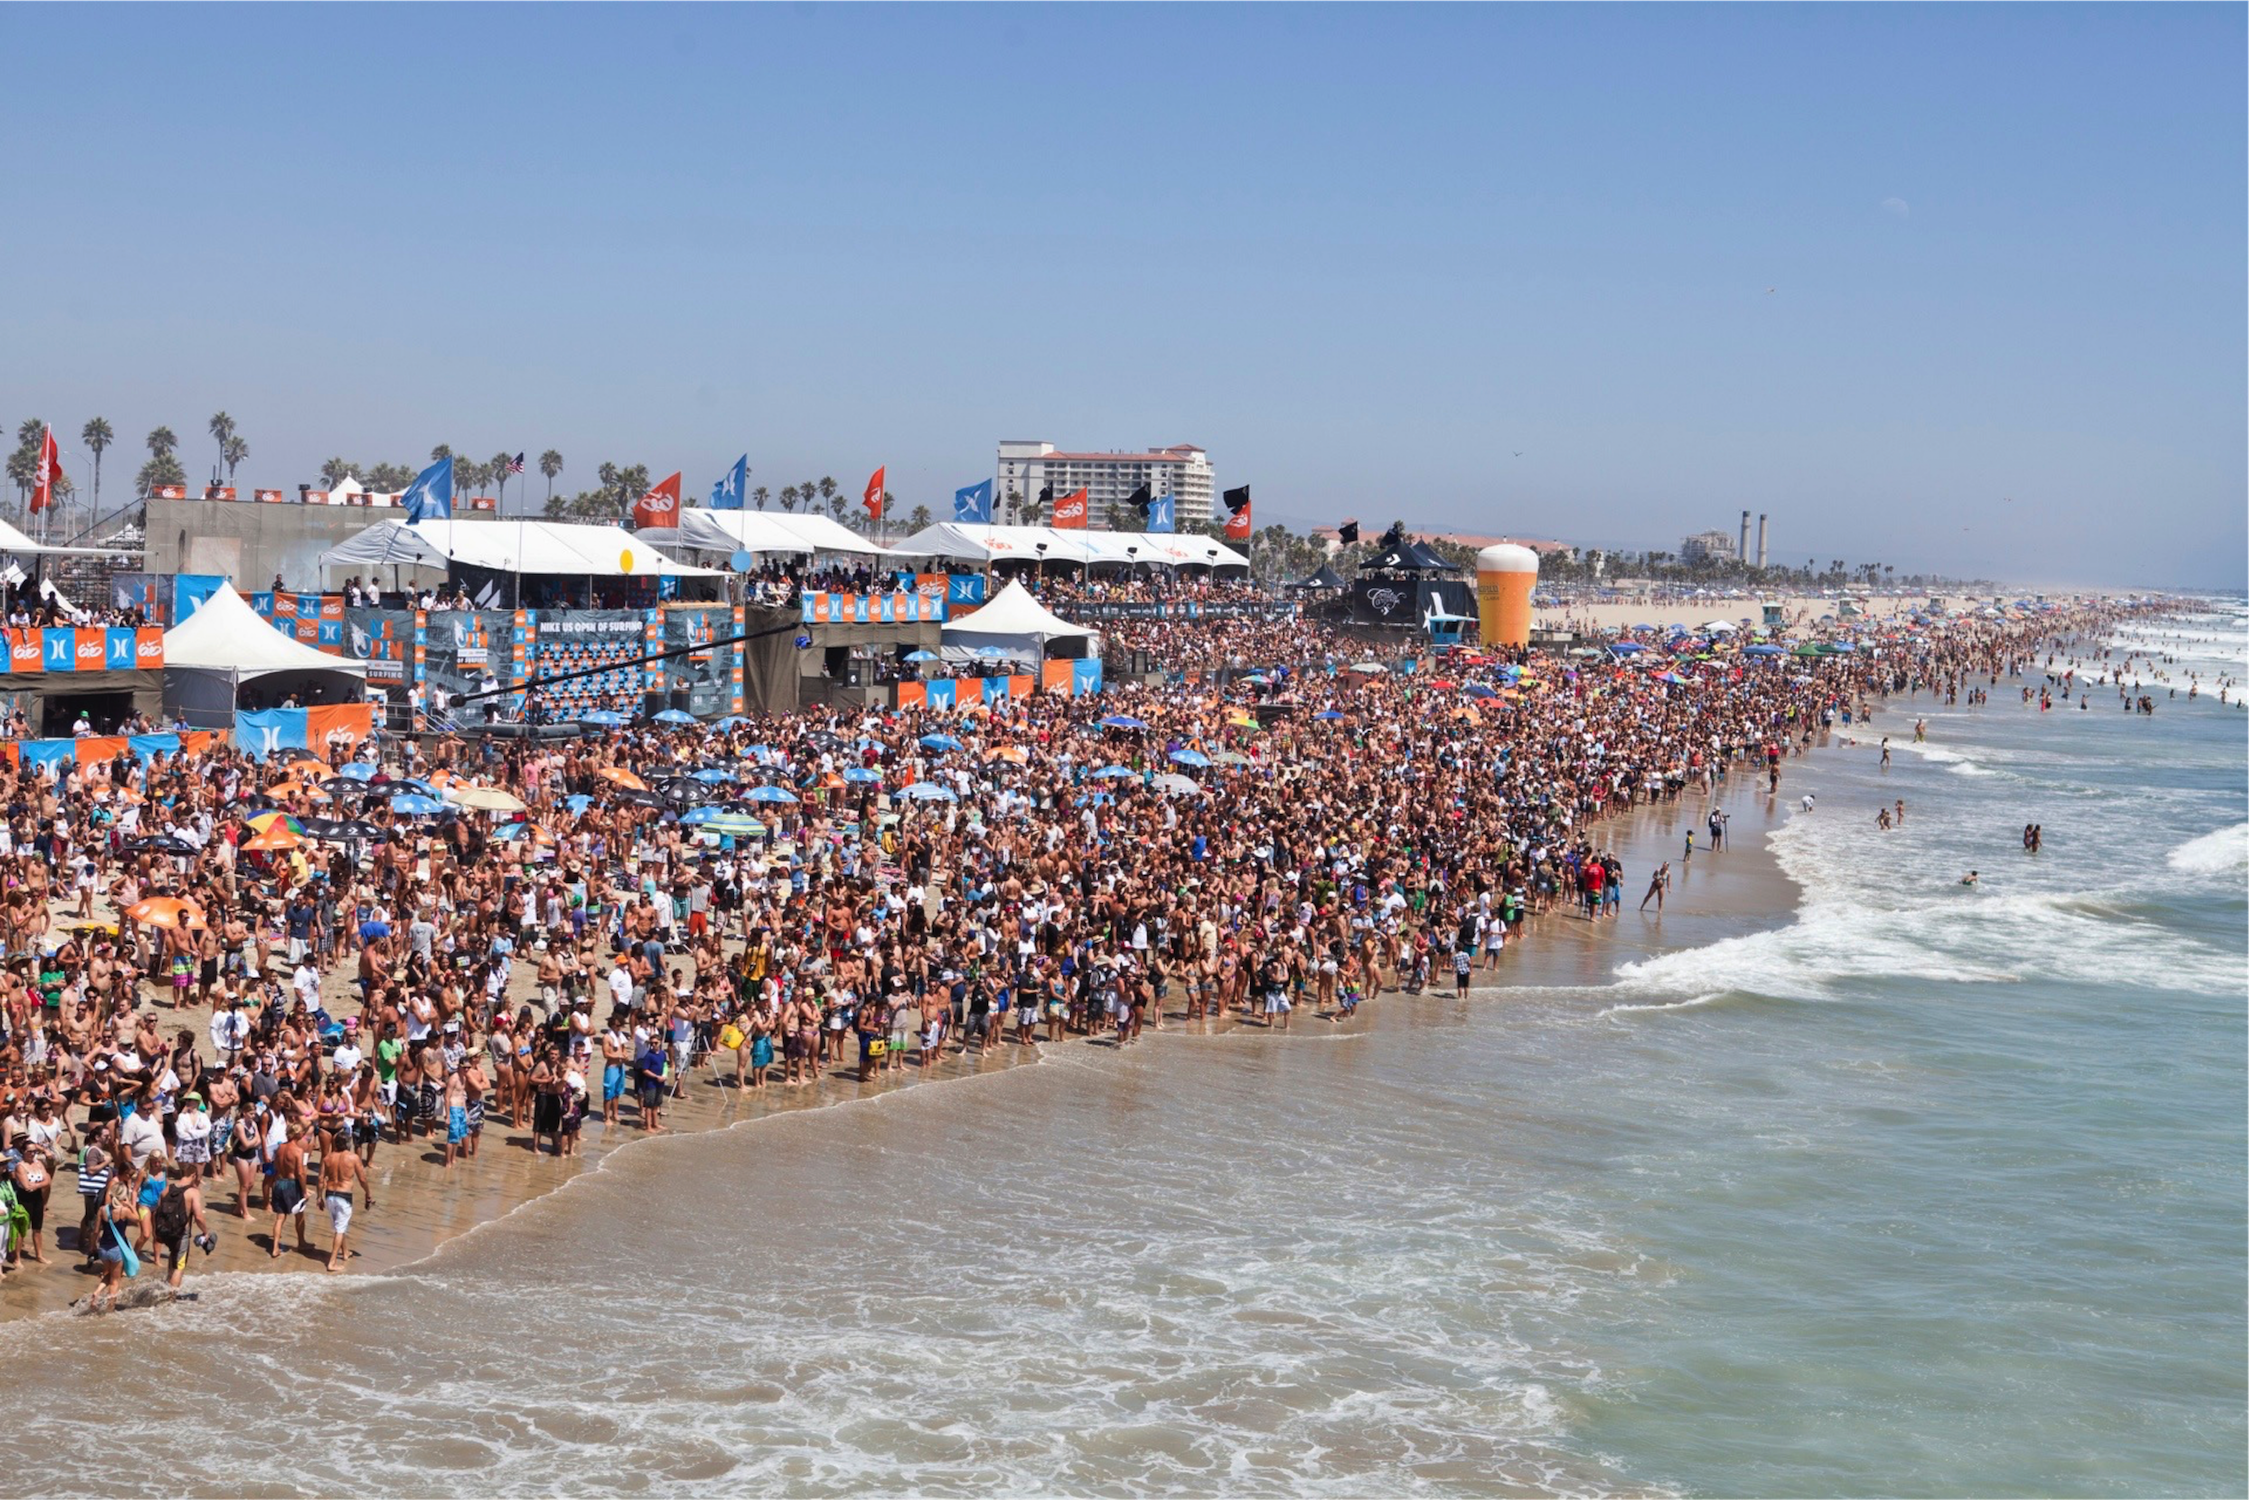 The scene at a surfing U.S. Open in recent years in Huntington Beach, California // photo U.S. Open of Surfing